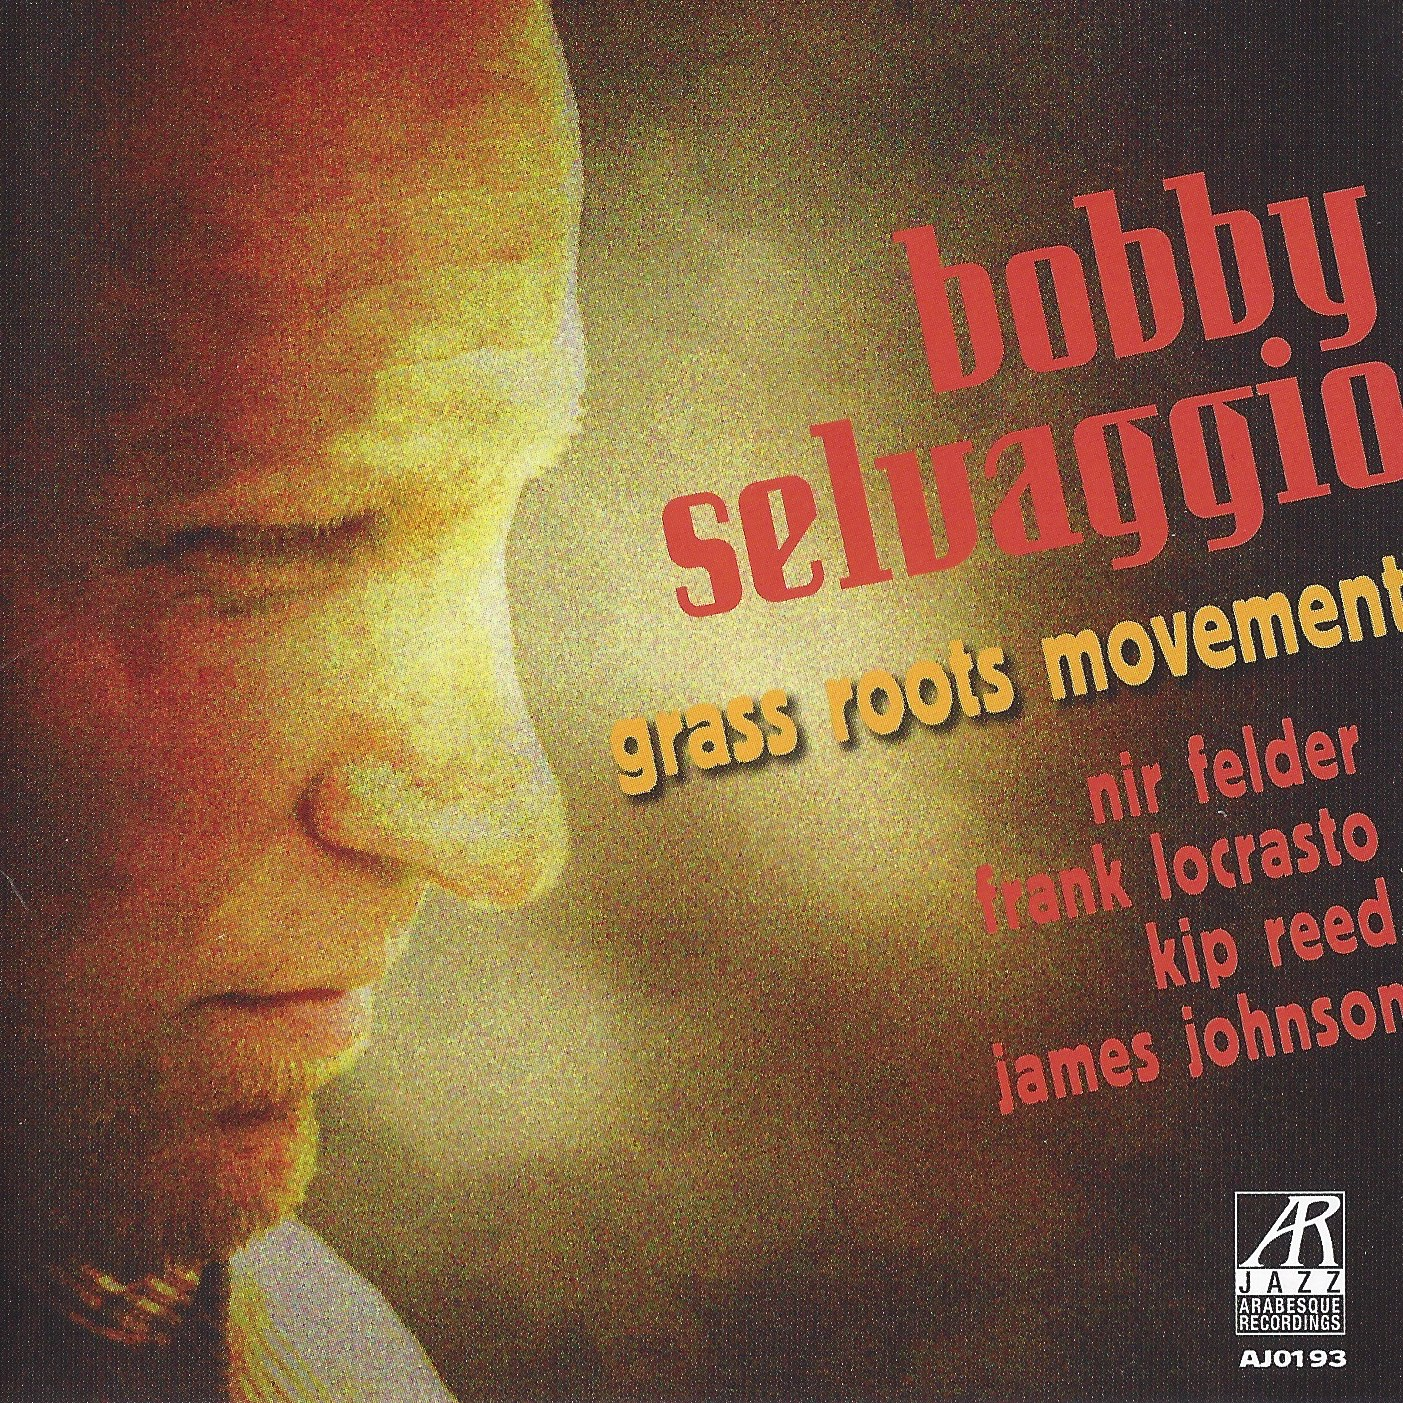 AJ0193  | Grass Roots Movement |  Bobby Selvaggio